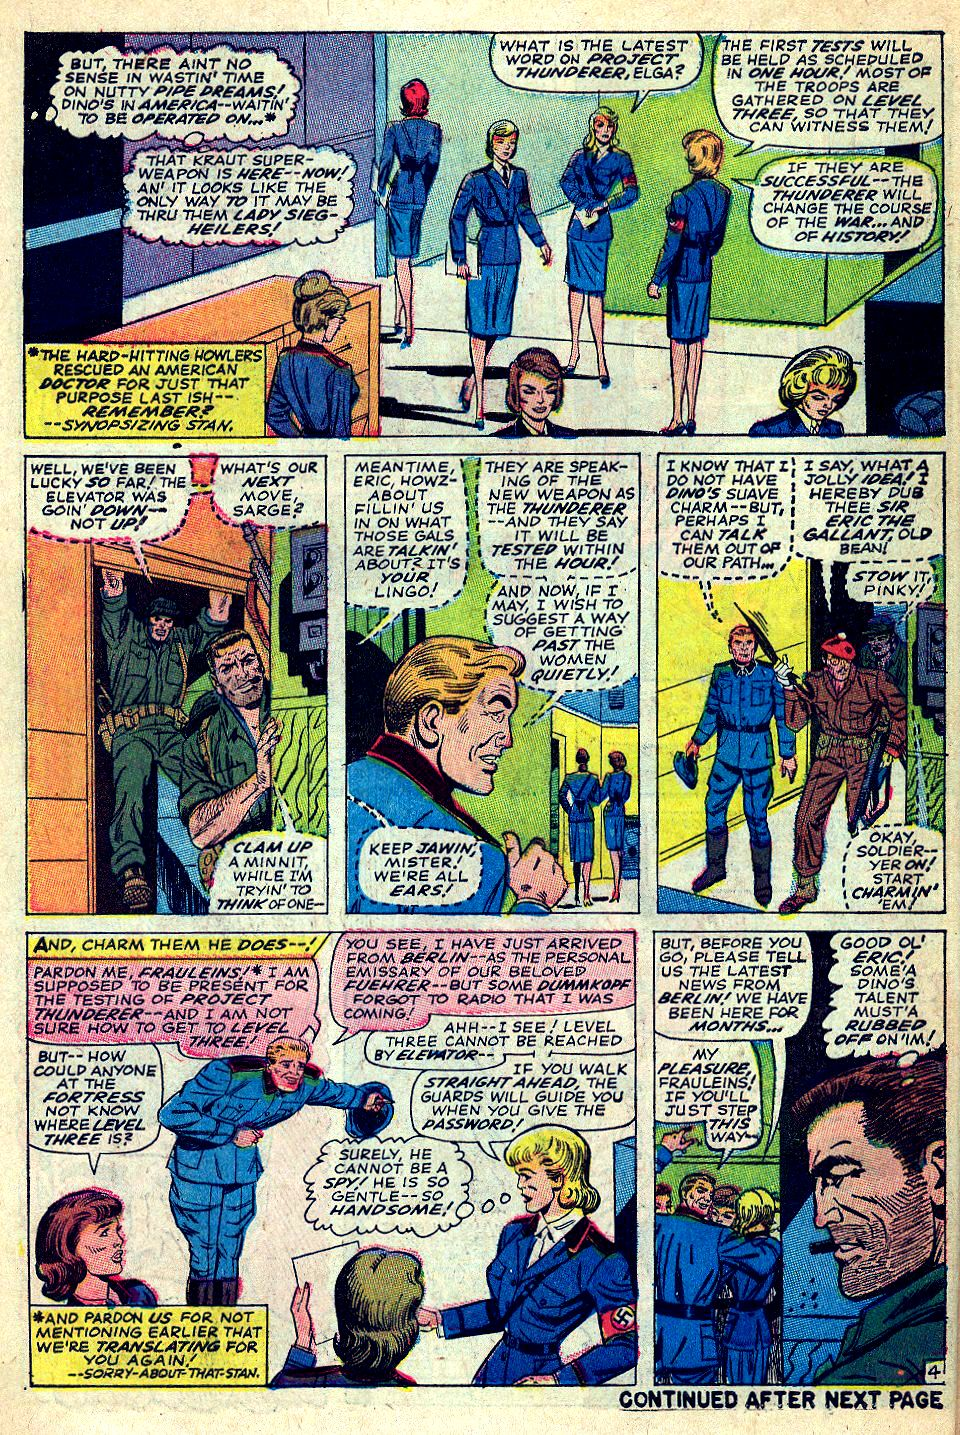 Read online Sgt. Fury comic -  Issue #39 - 6